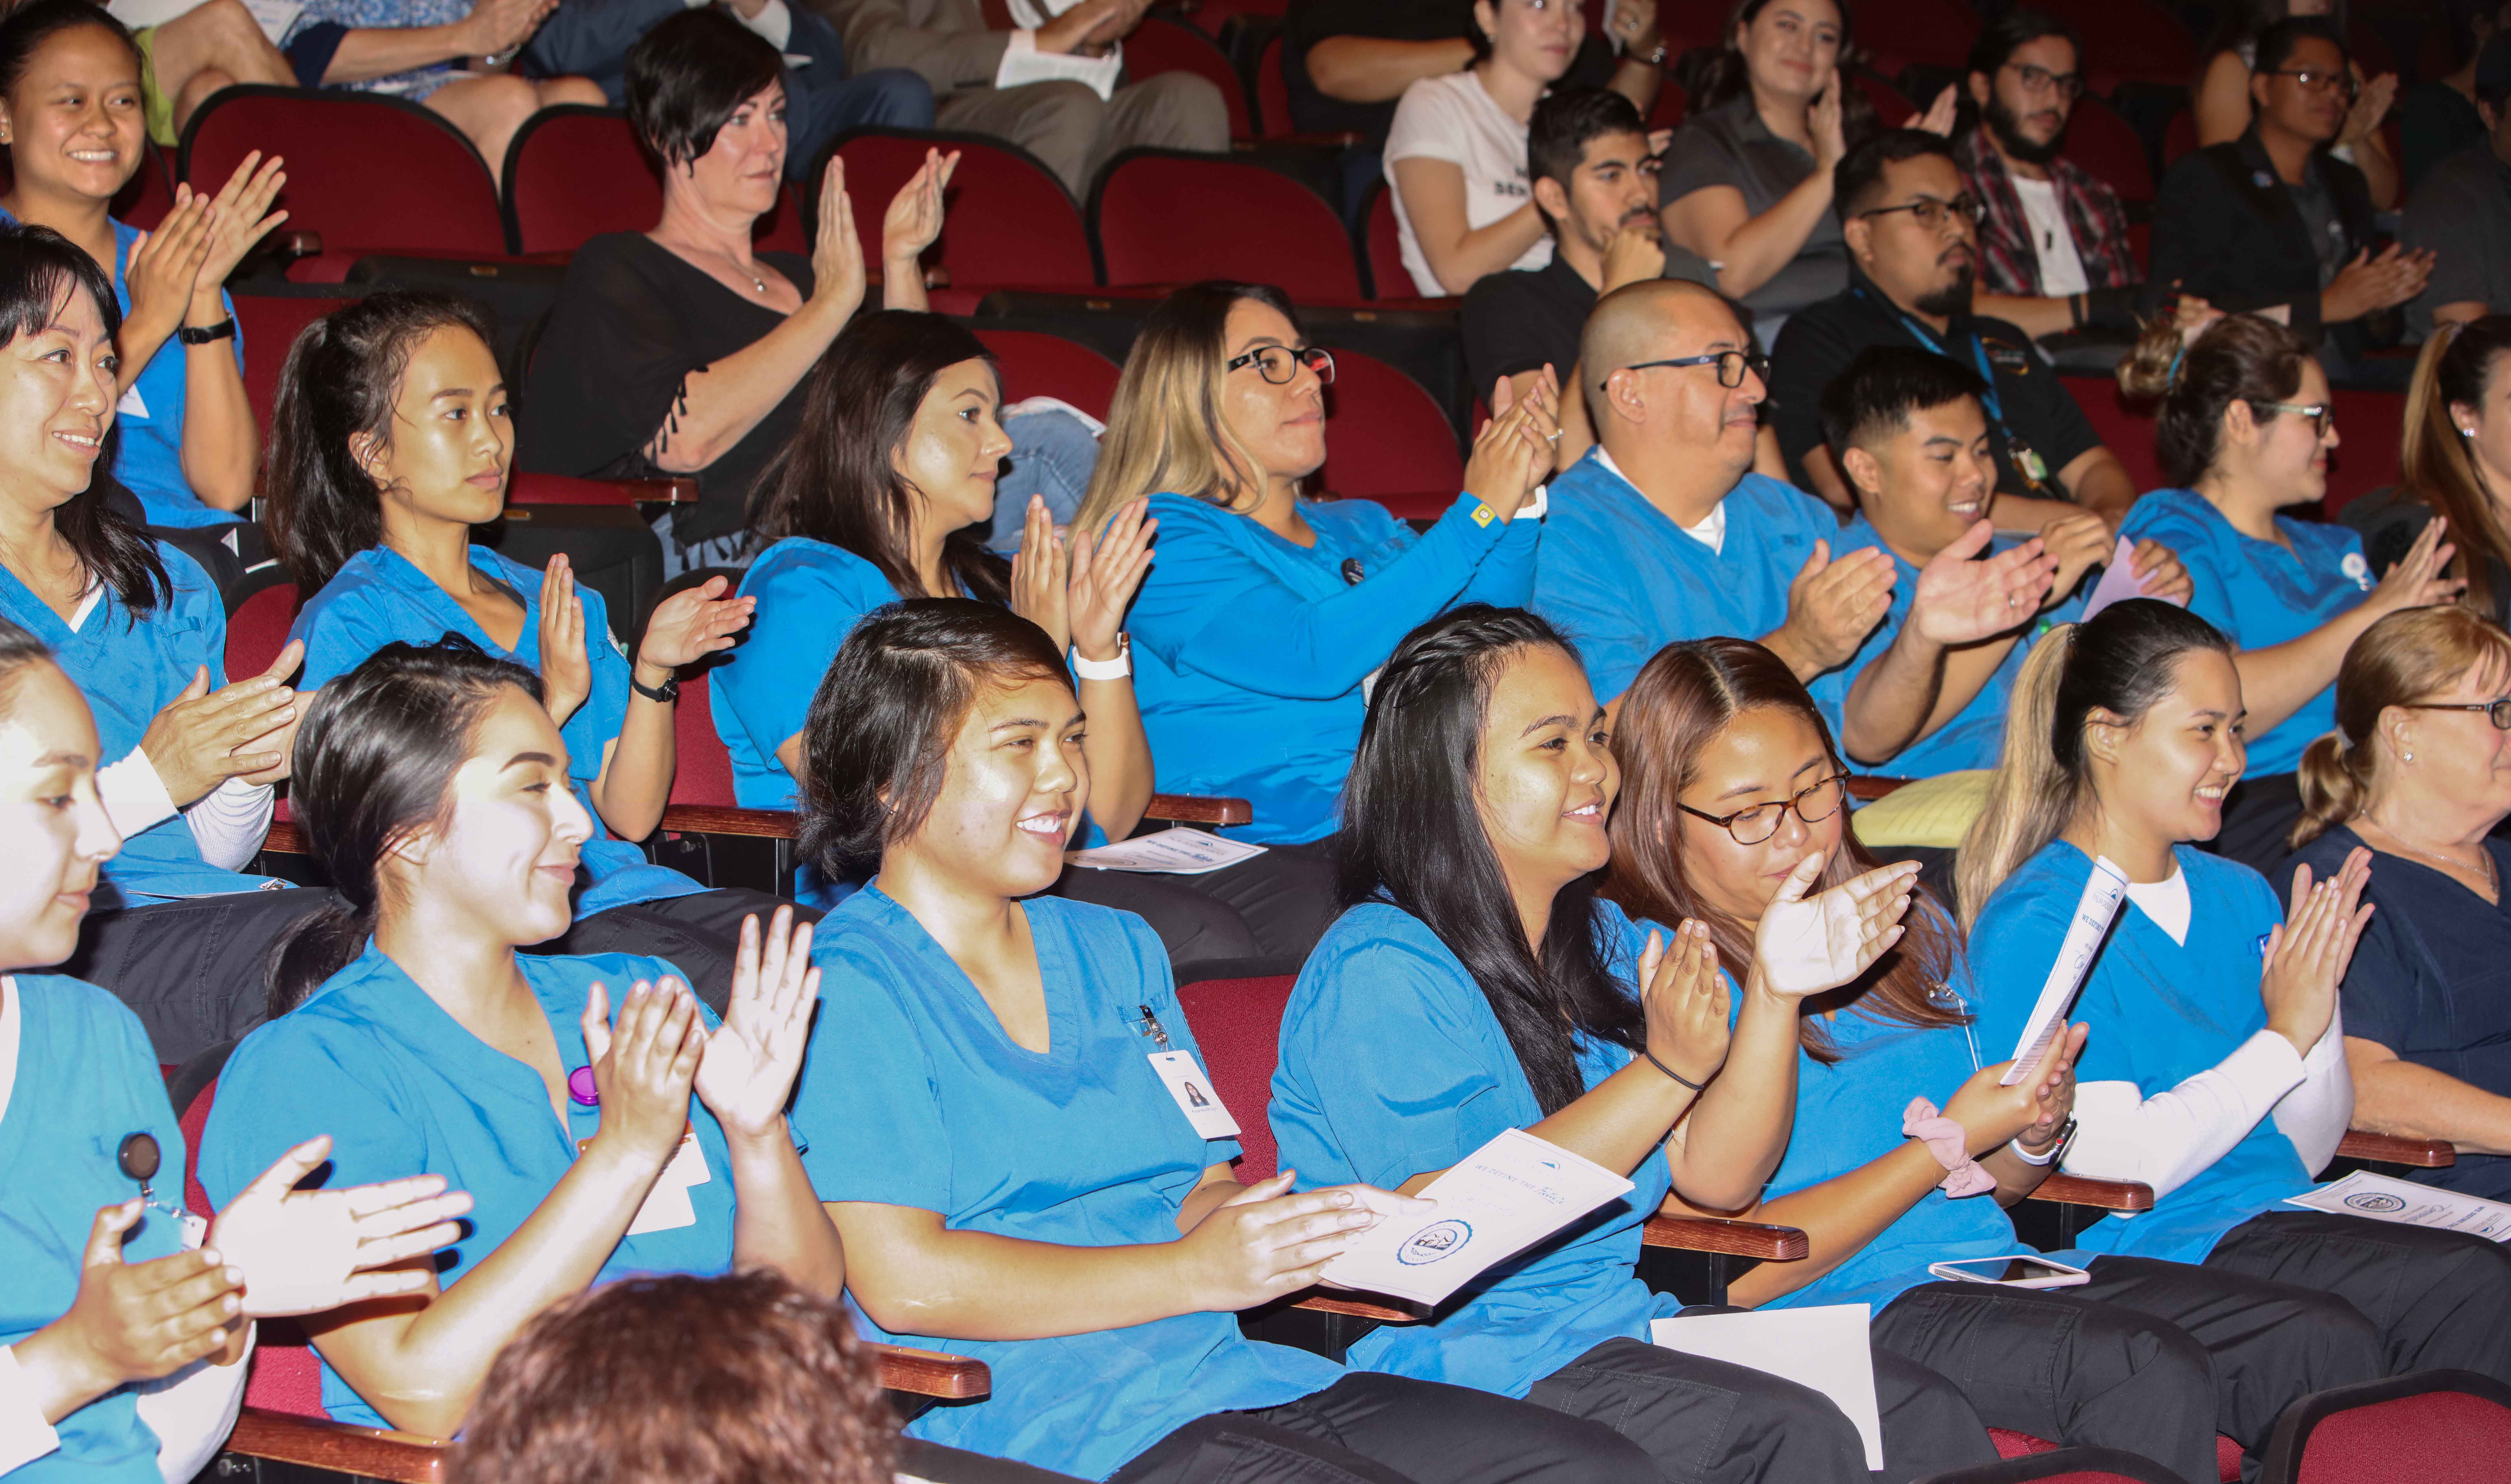 New and returning students learned about academic tradition and campus life.